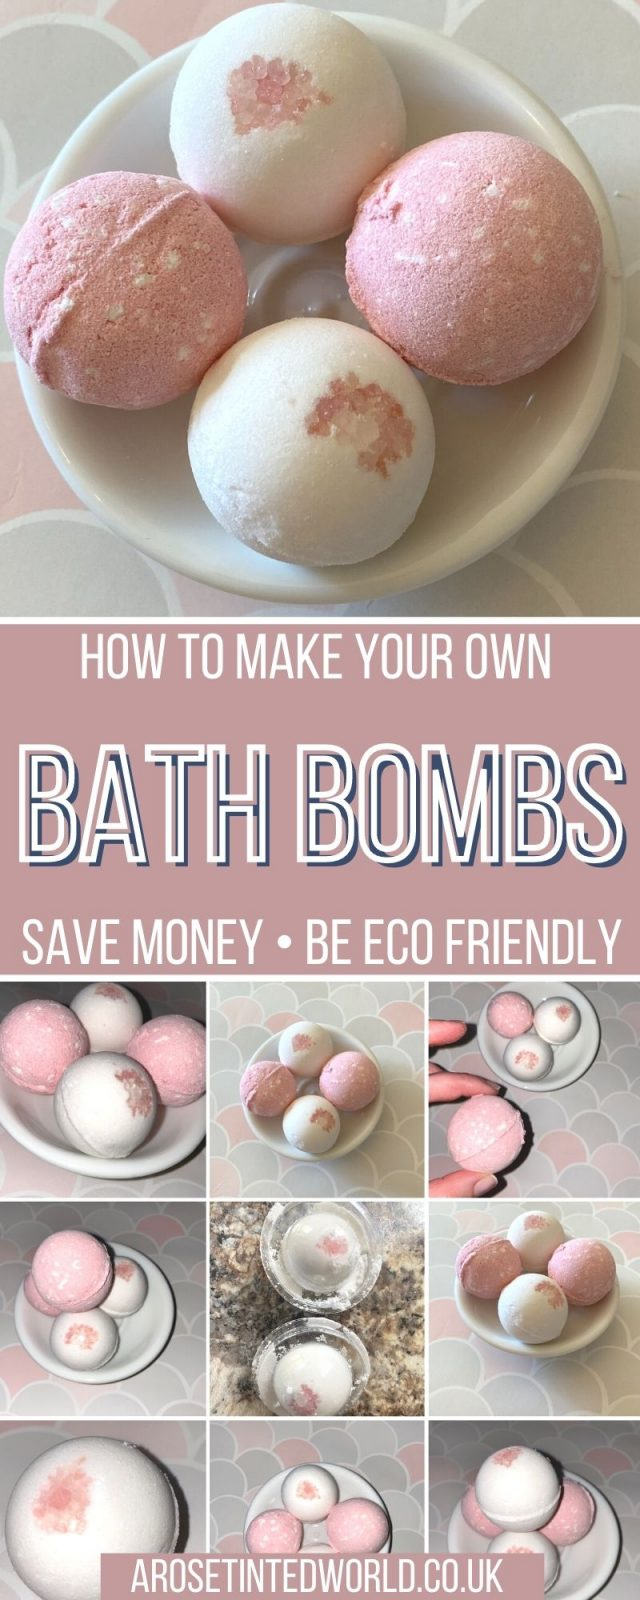 How To Make Your Own Homemade Bath Bombs - bath fizzers can be so expensive, but here is a tutorial on how to make your own cheaply and easily at home! This natural bath bomb recipe uses ingredients that you probably already have in your cupboards at home. Develop this basic idea using color, essential oils and decorations to create your own custom bath bombs recipes. They make great DIY gifts and are perfect to sell too.